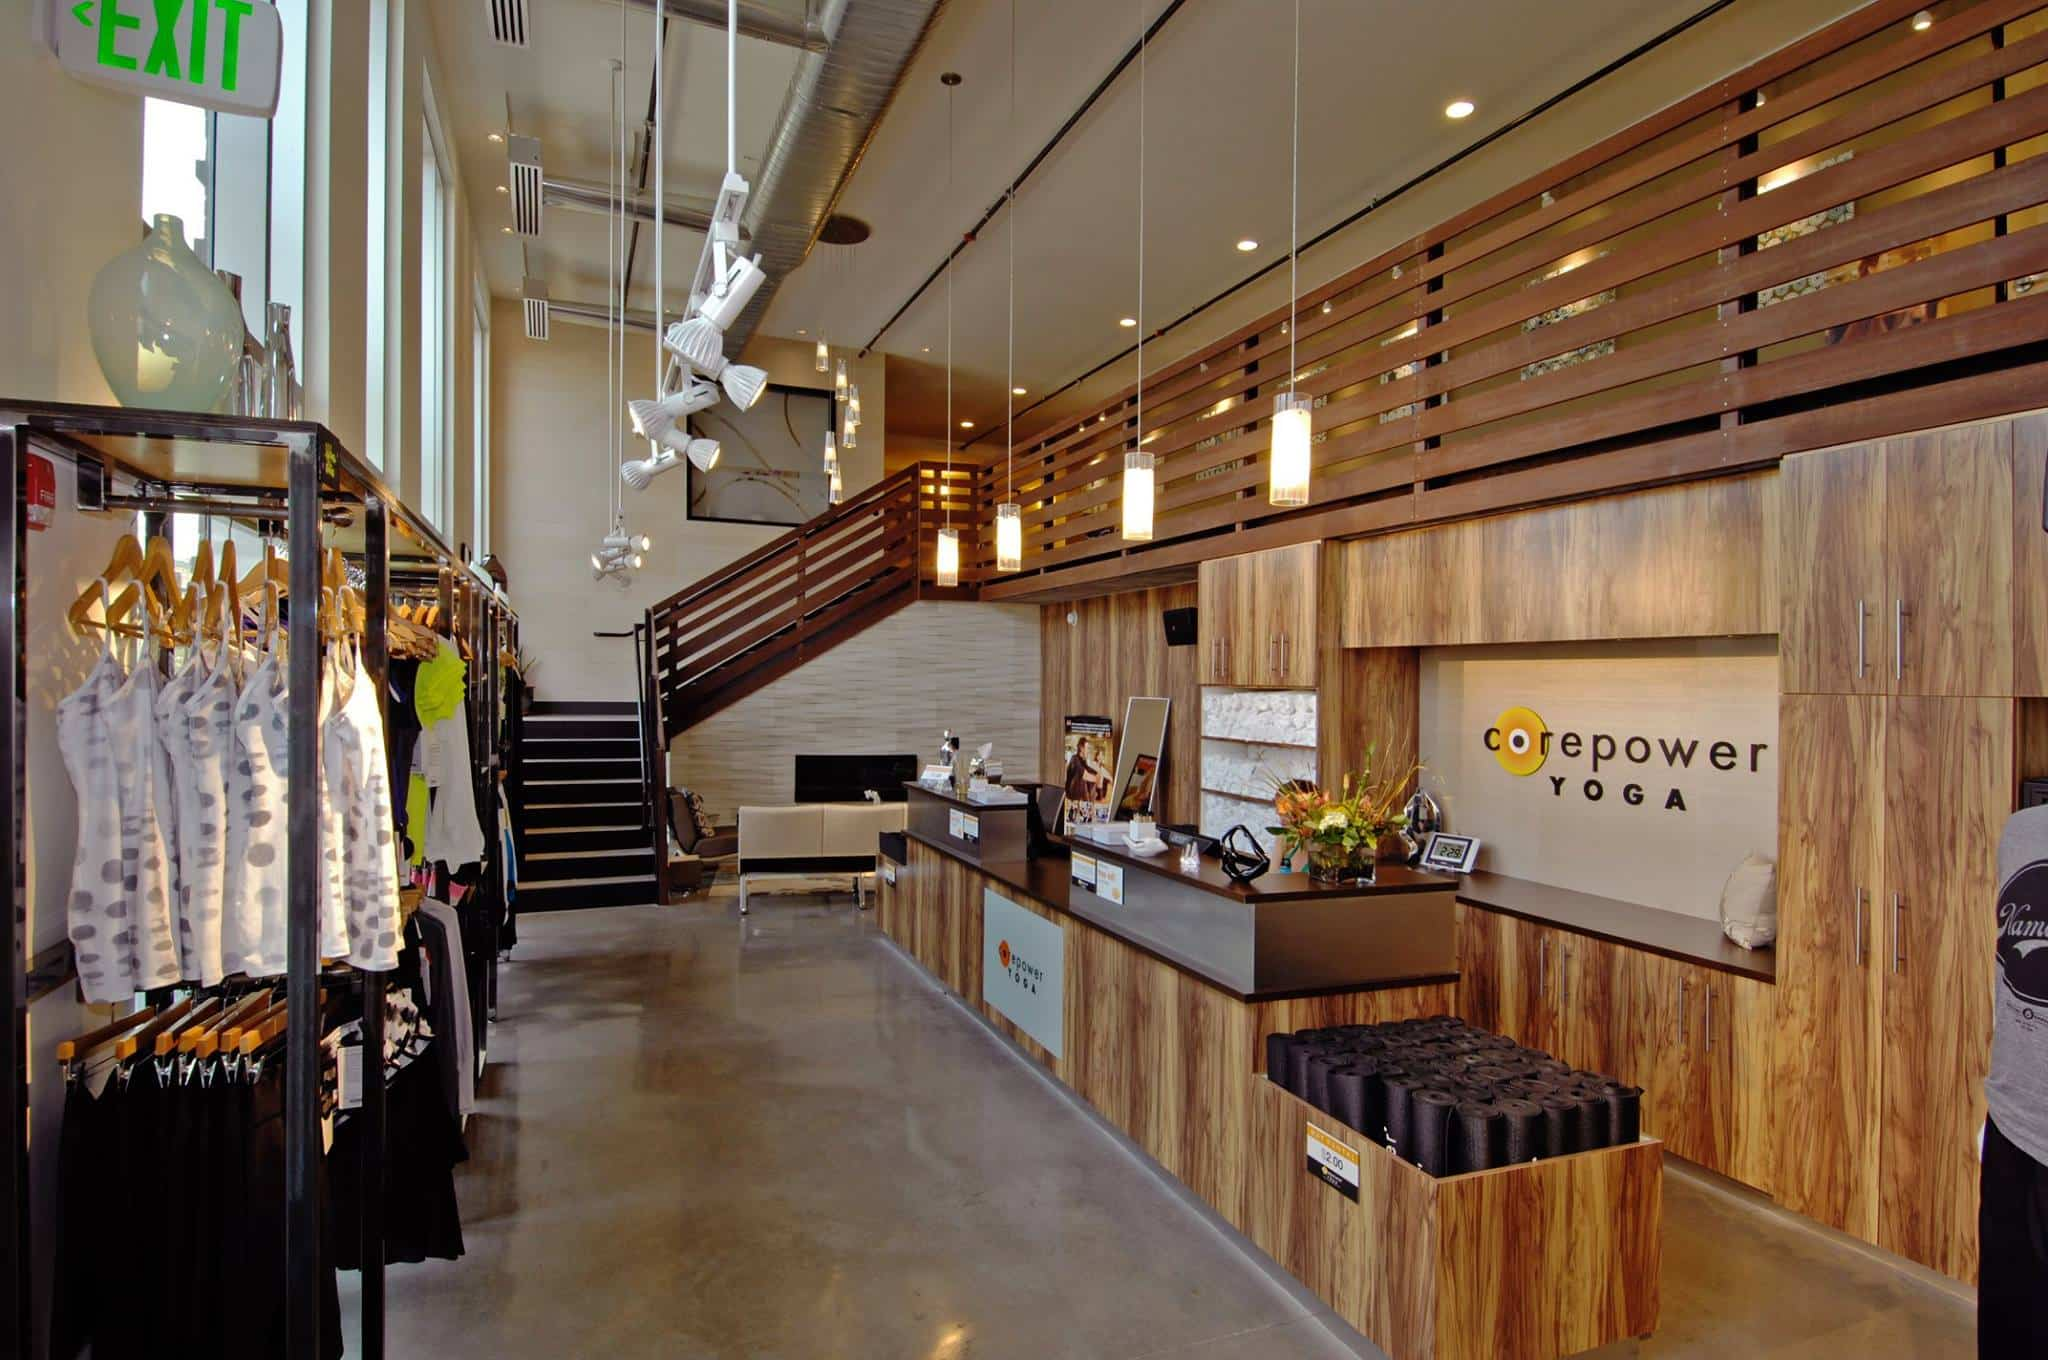 CorePower Yoga located on-site with Yoga Training and Spin Studio